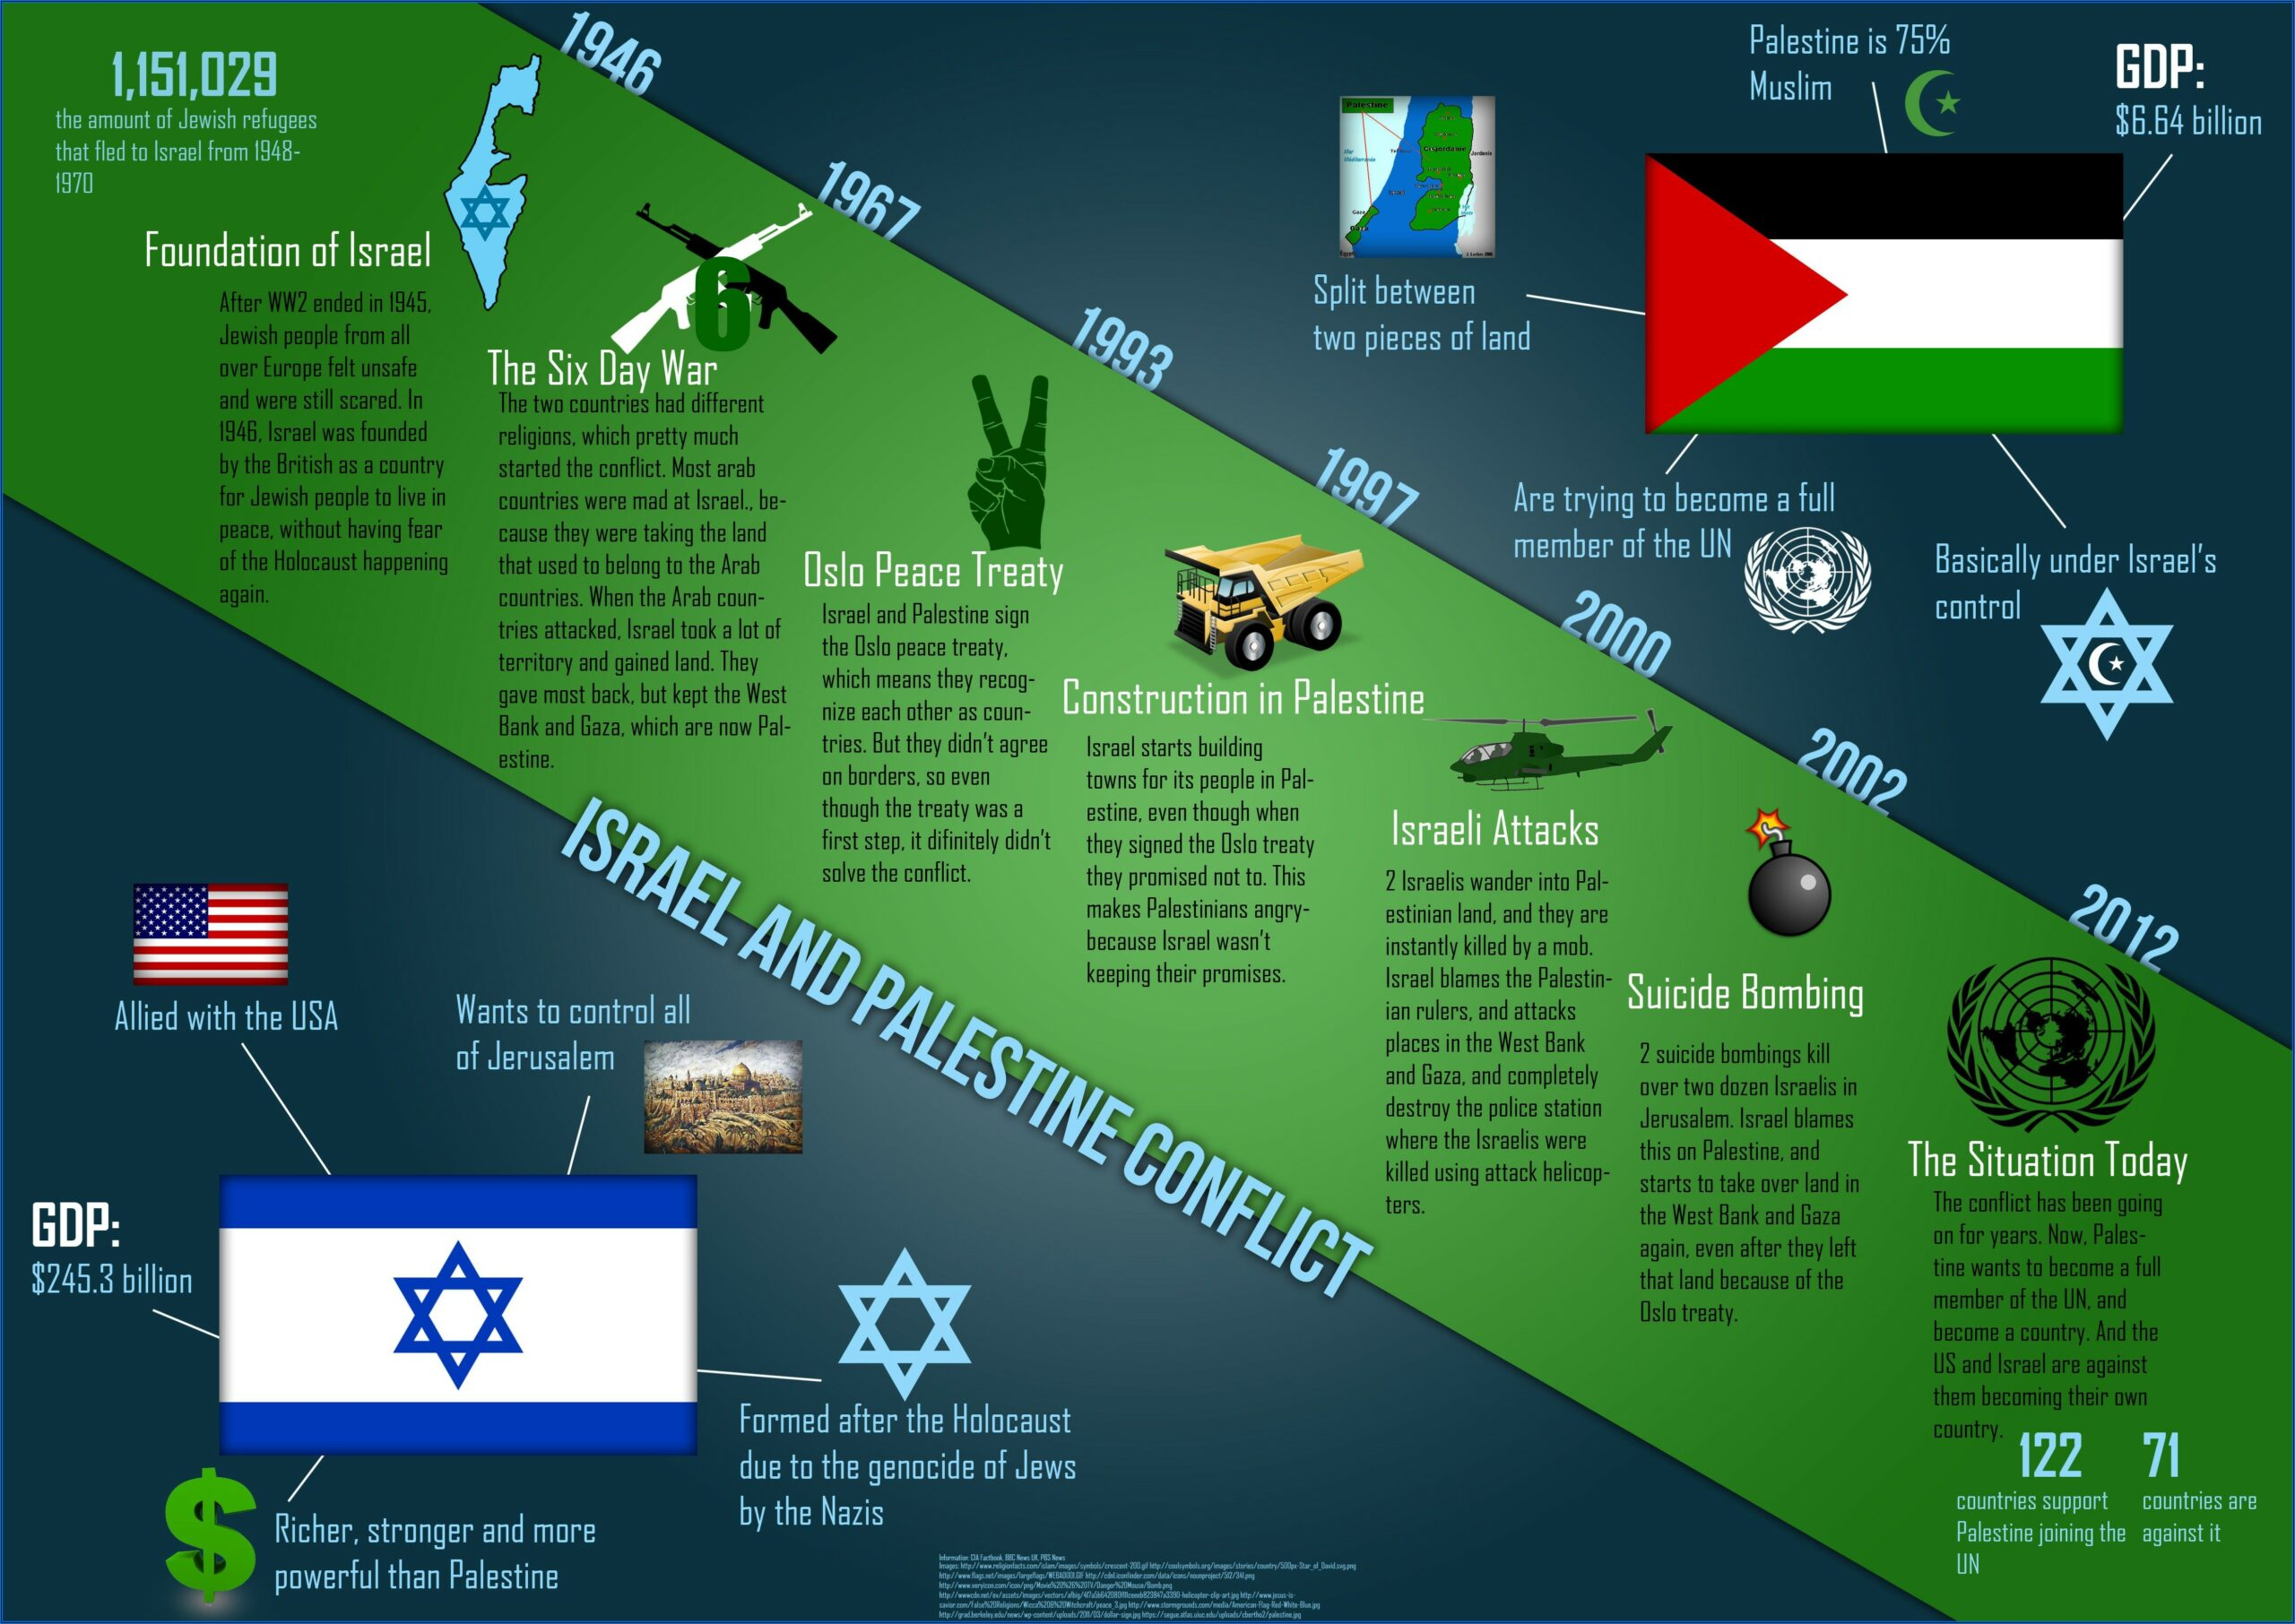 Israeli And Palestinian Conflict Timeline